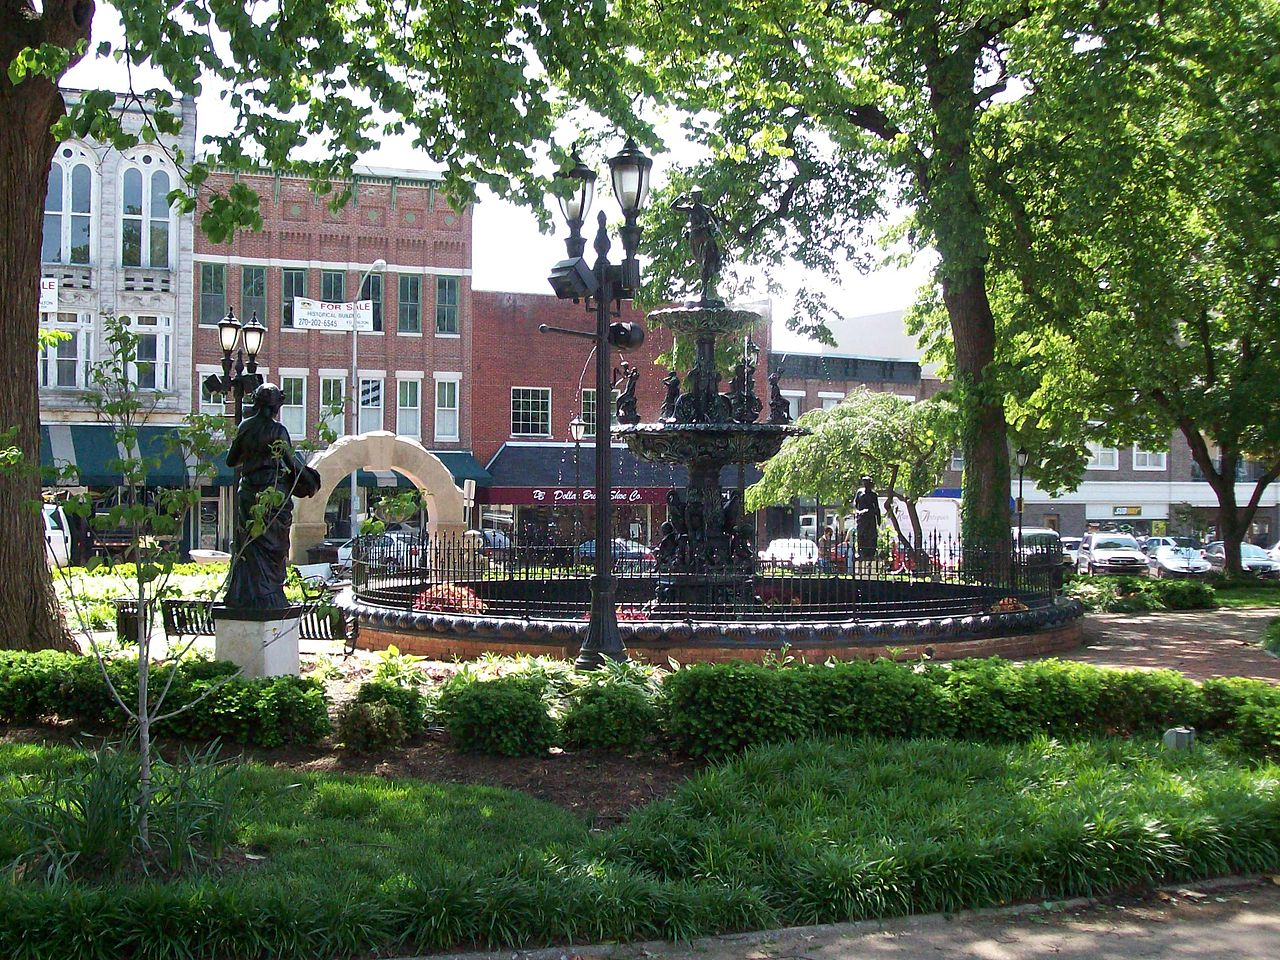 Fountain_Square_Park,_Bowling_Green,_Kentucky